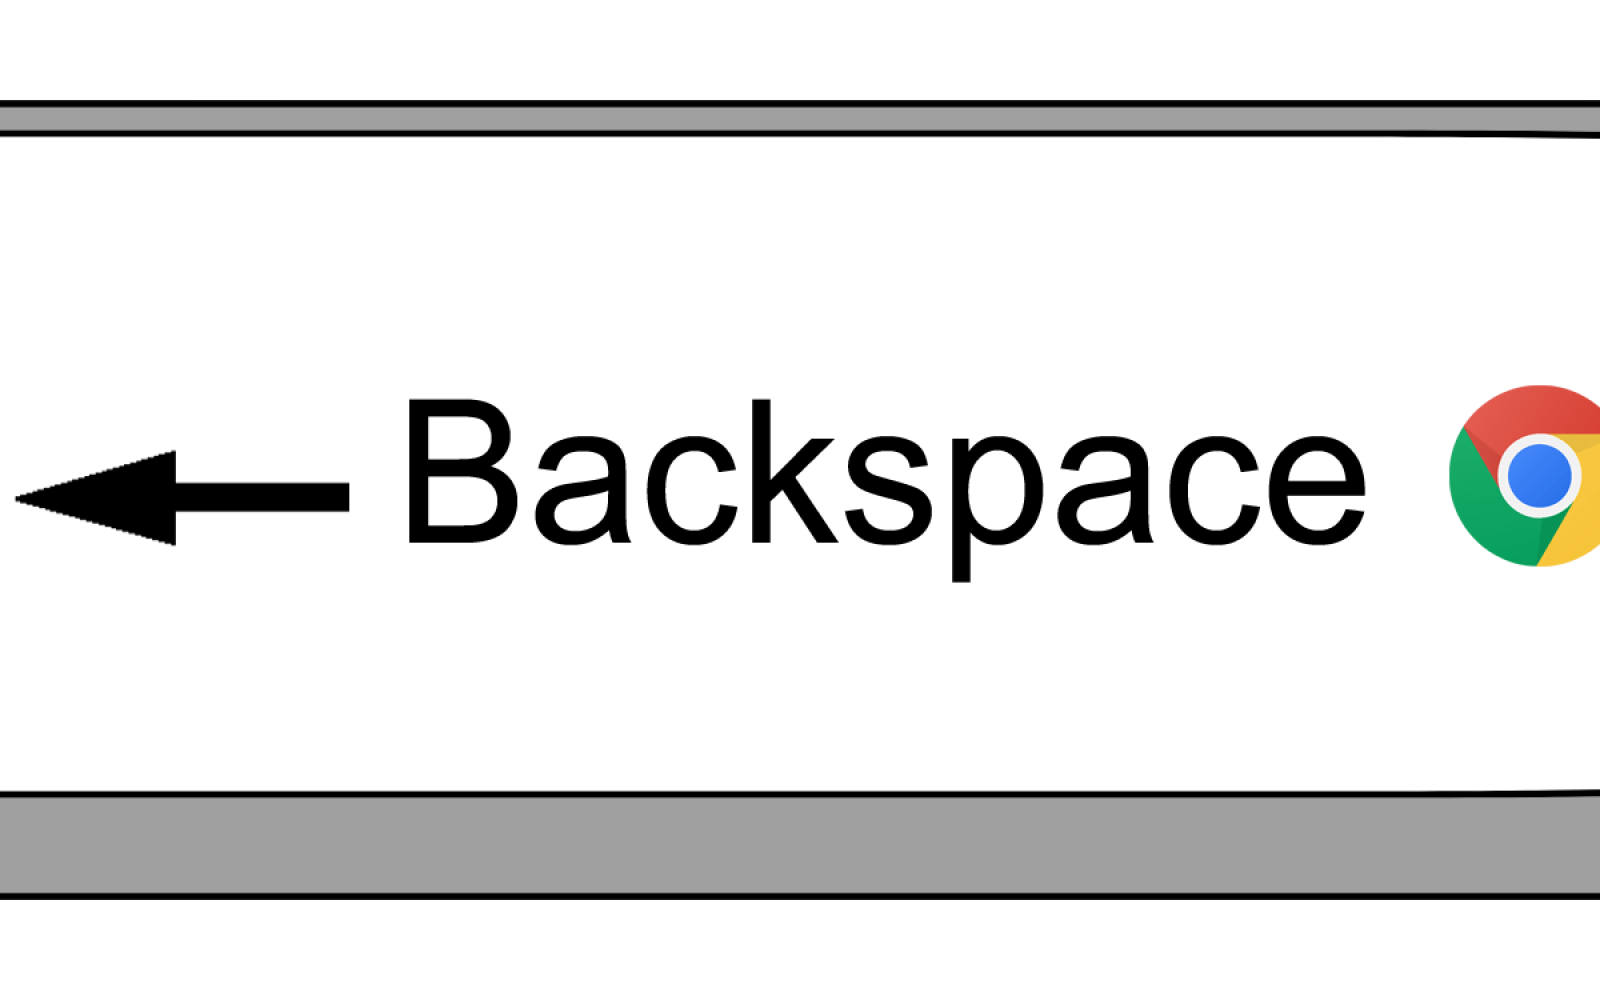 Starting with Chrome 52, Google will disable the use of Backspace as